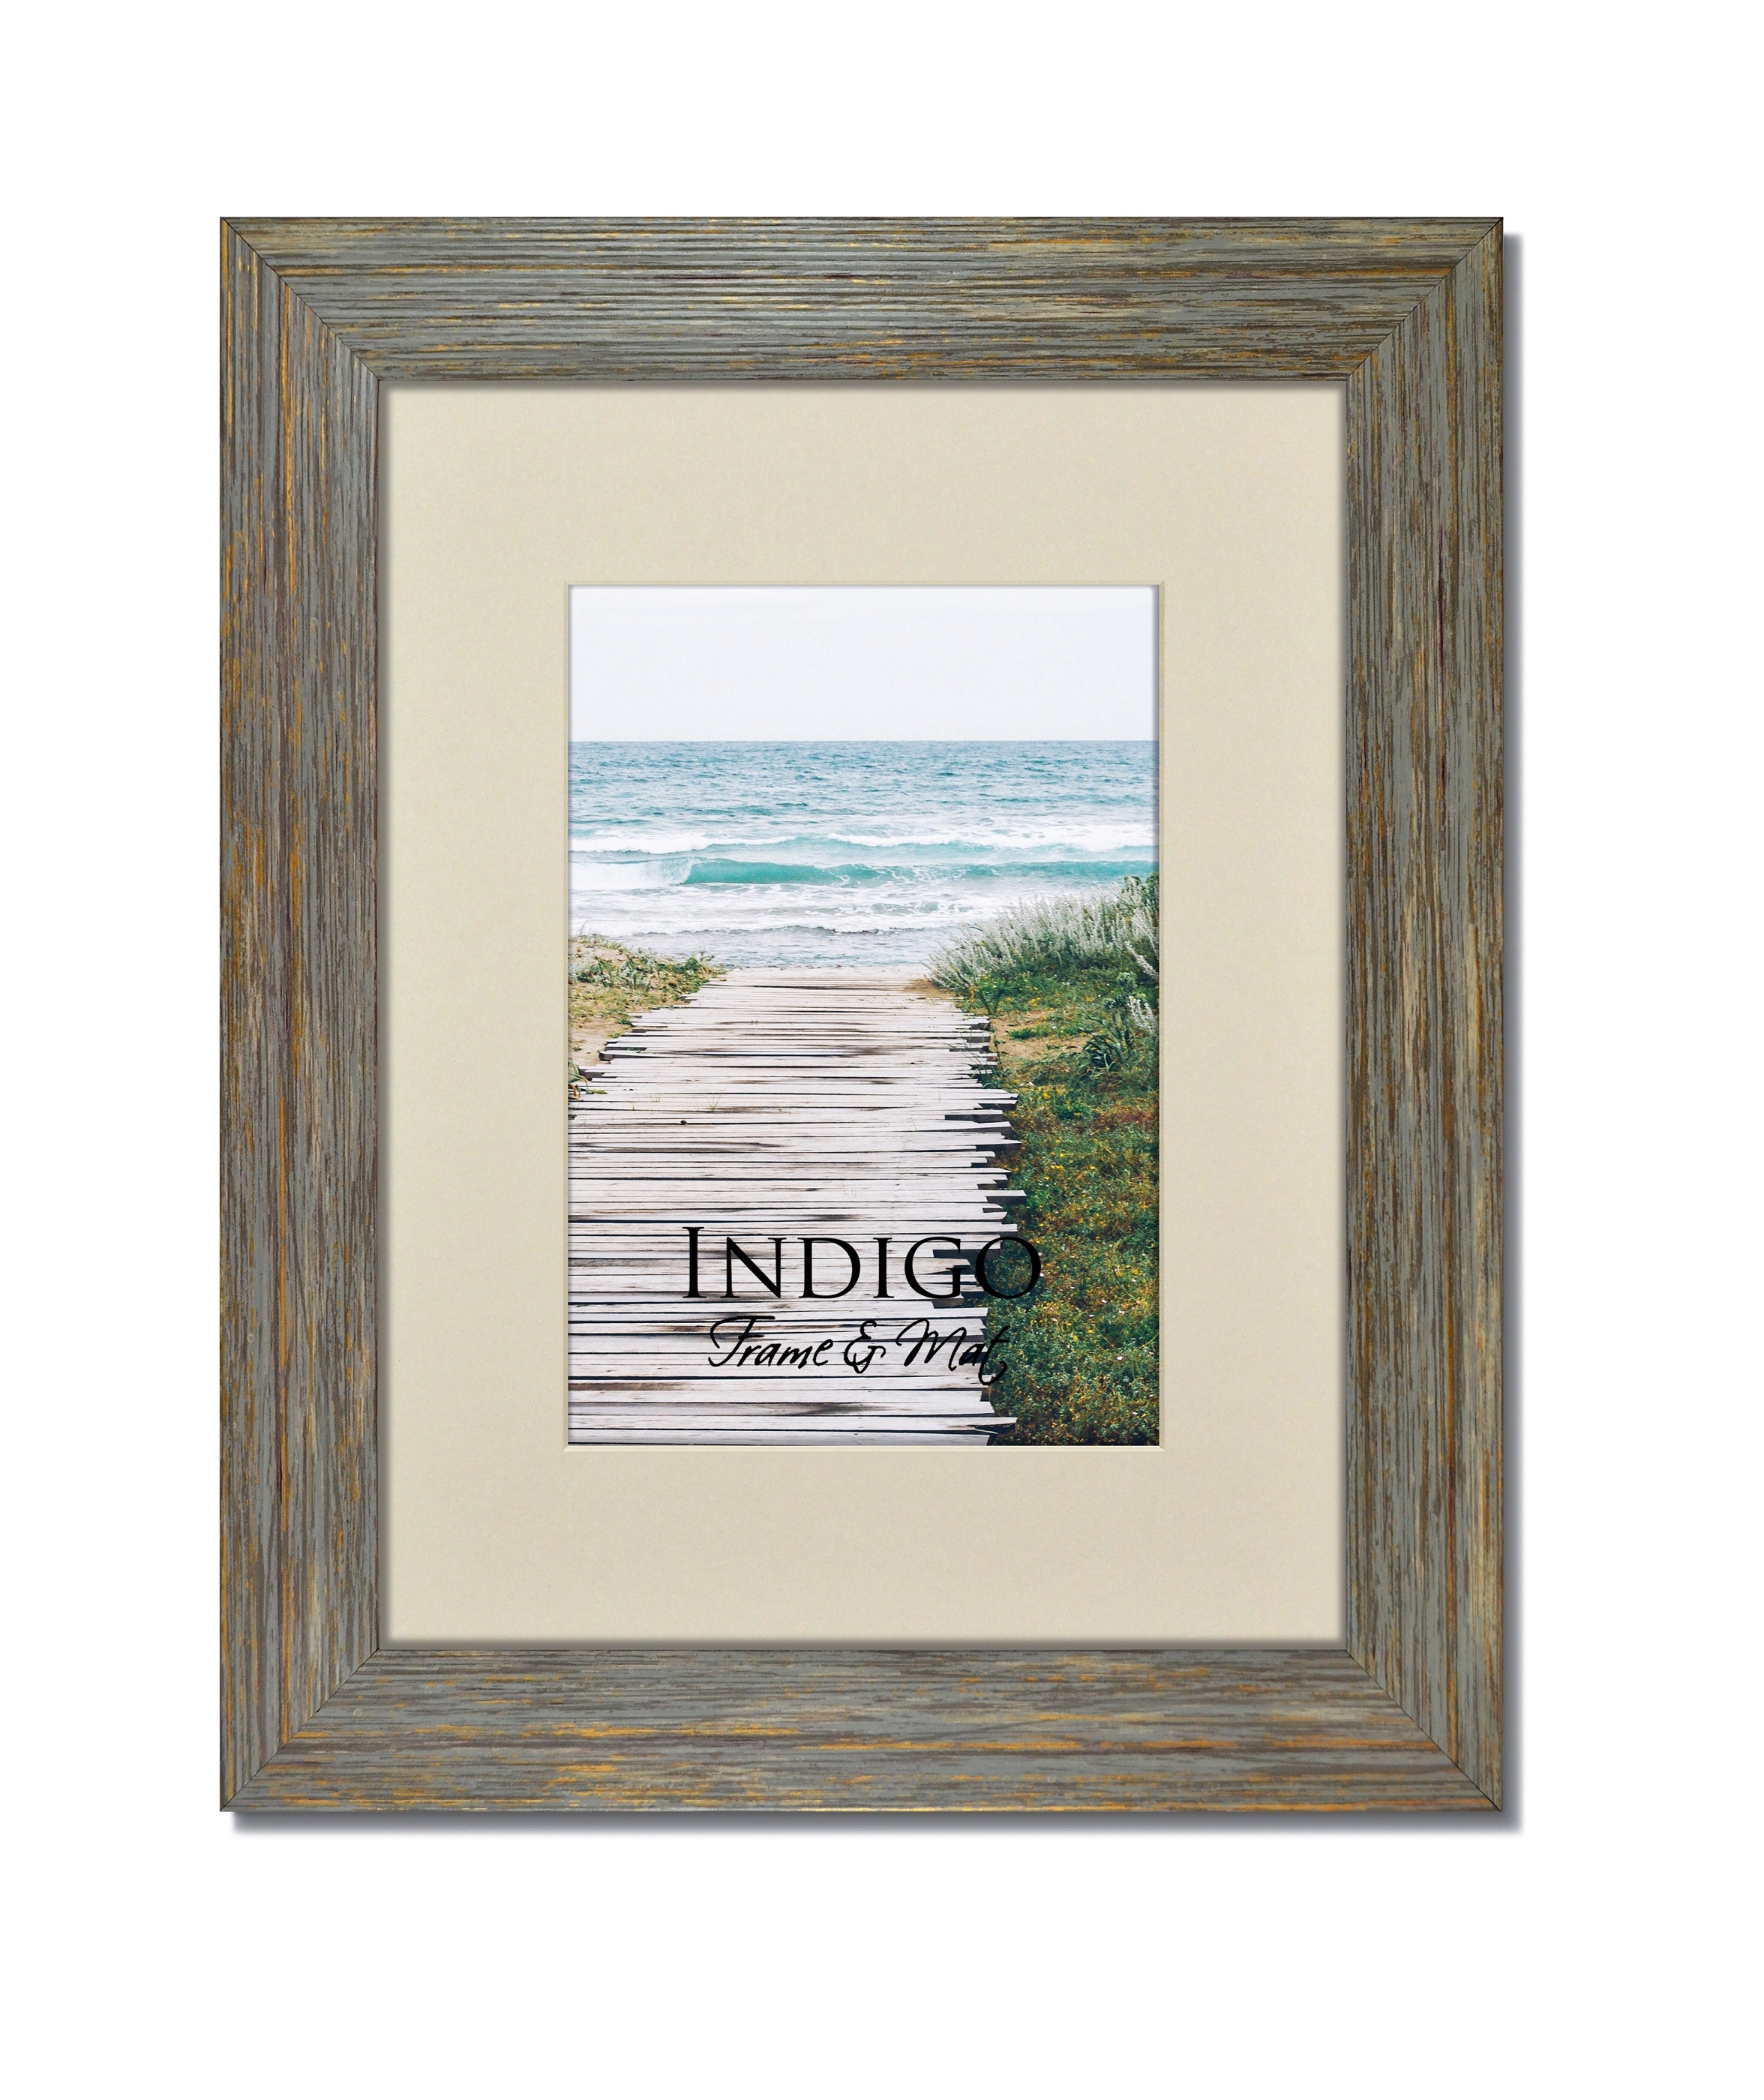 Rustic Blue Frame with Soft White Mat - Indigo Frame & Mat